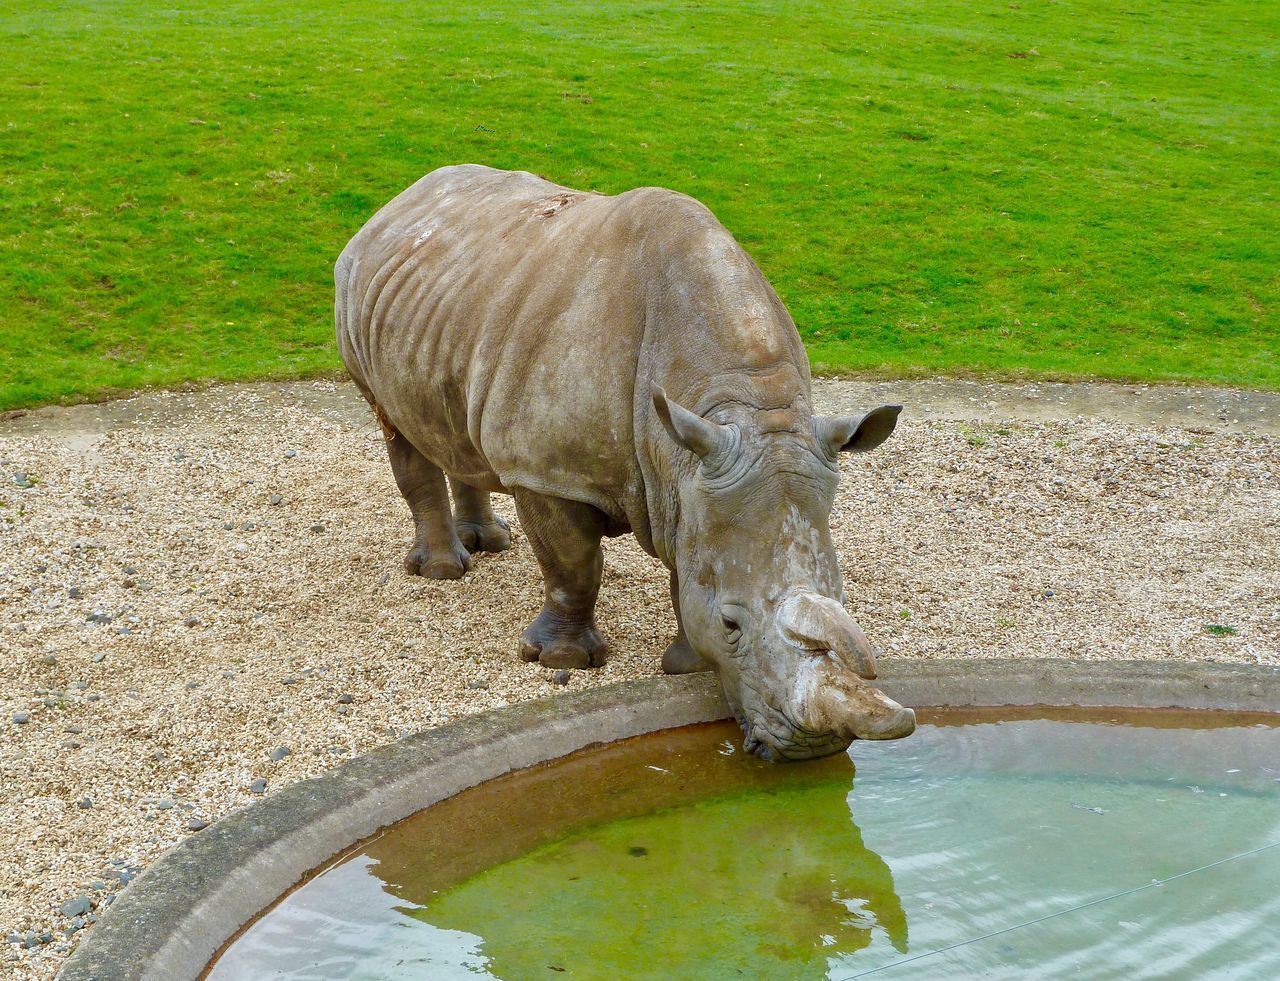 Rhinoceros Whipsnade Zoo One Animal Water Animal Themes Mammal Animal Wildlife No People Domestic Animals Nature Livestock Day Water Buffalo Outdoors Grass Animals In The Wild Full Length Drinking